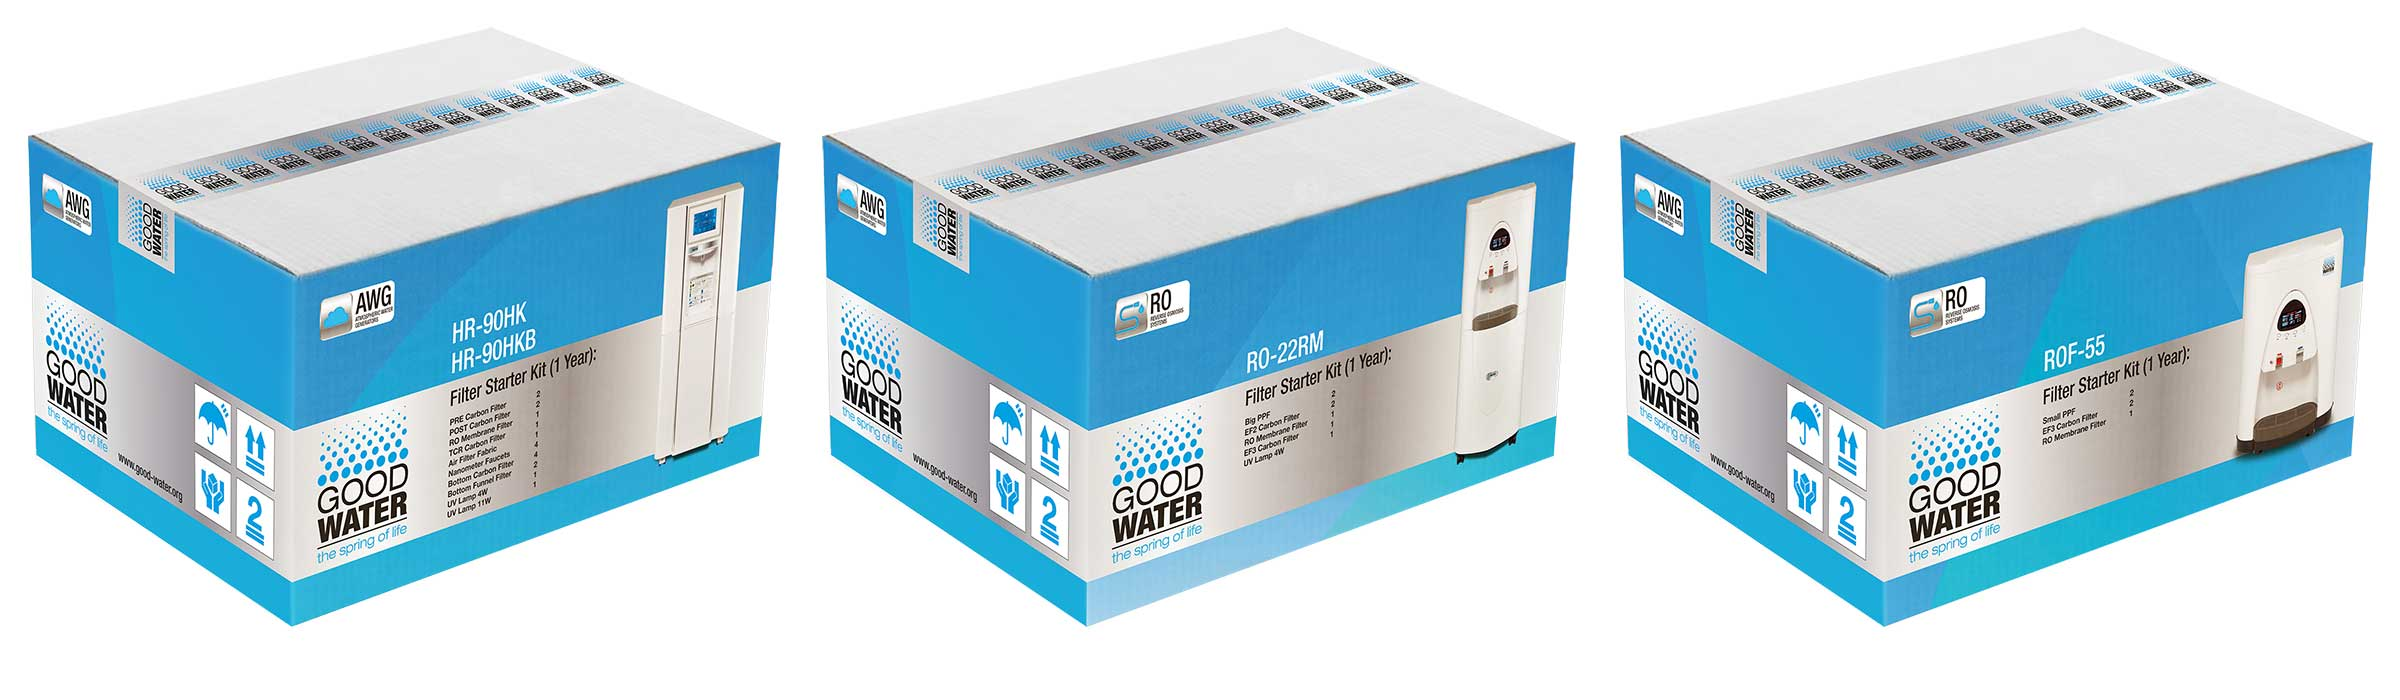 good-water-the-spring-of-life-water-technology-packaging